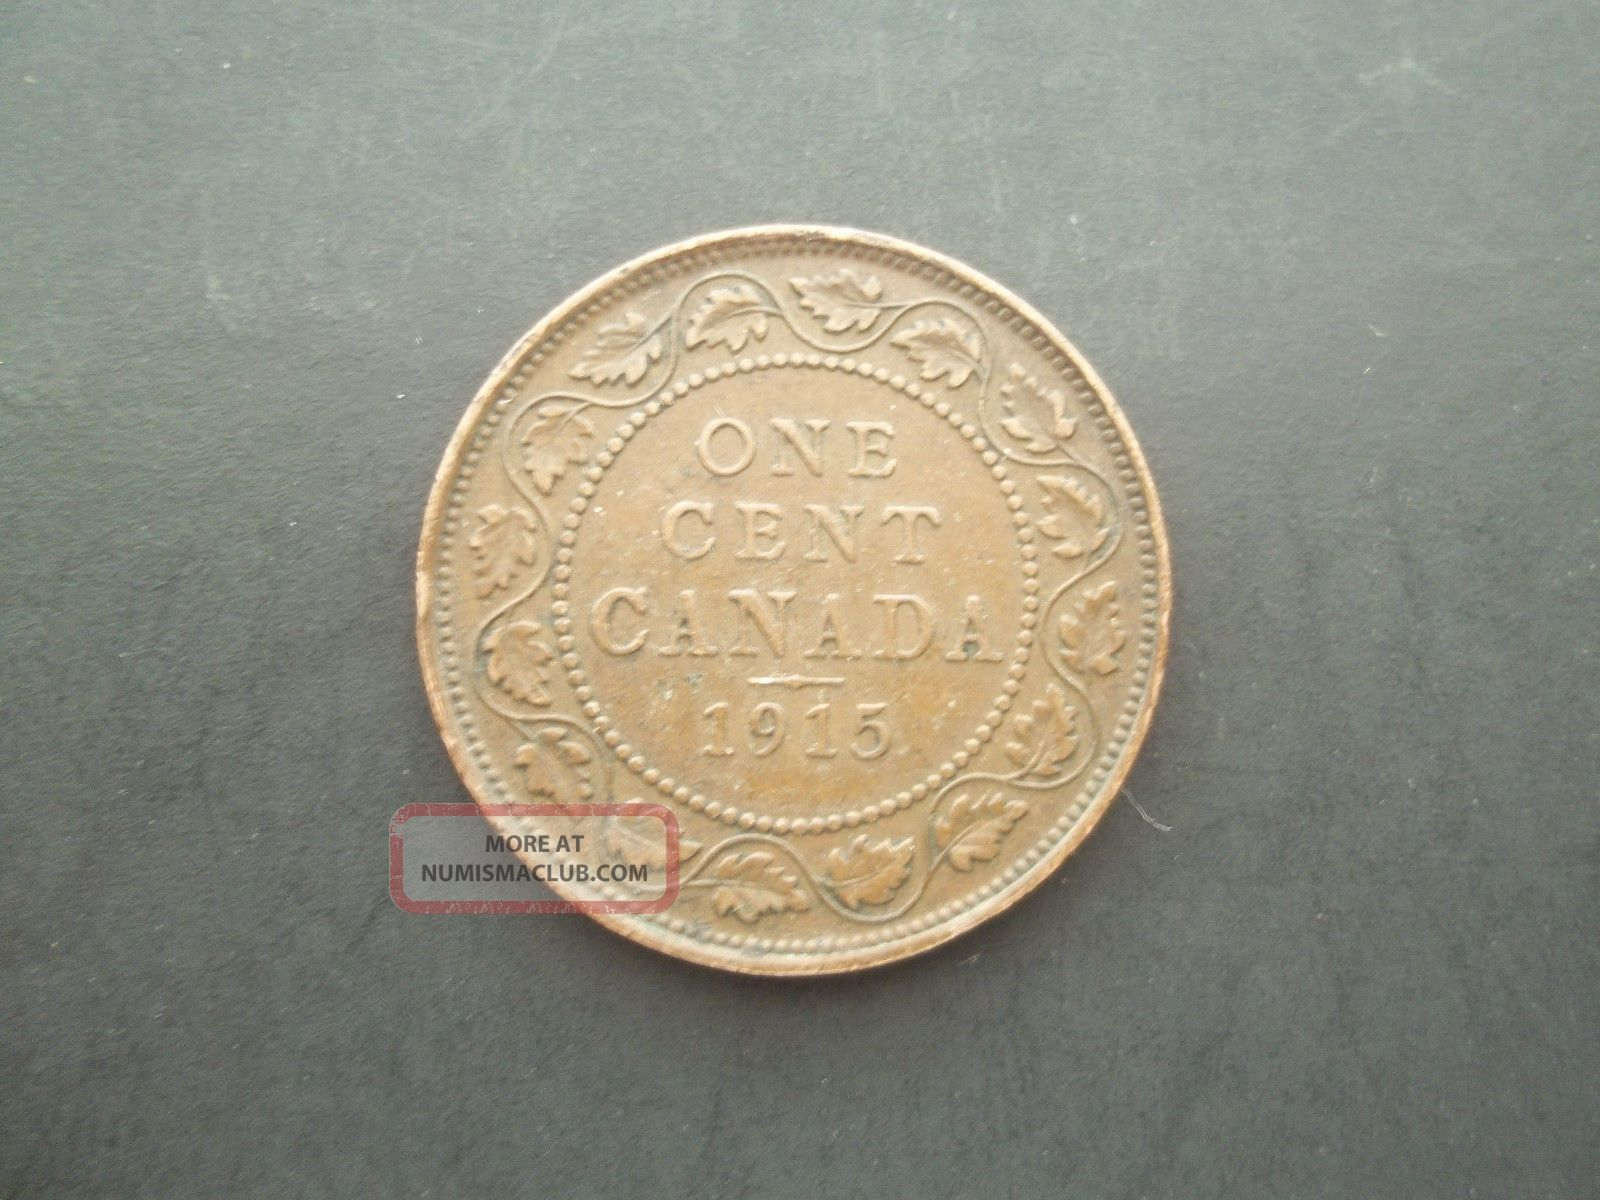 Canada 1915 1 Penny World Coin Coins: Canada photo